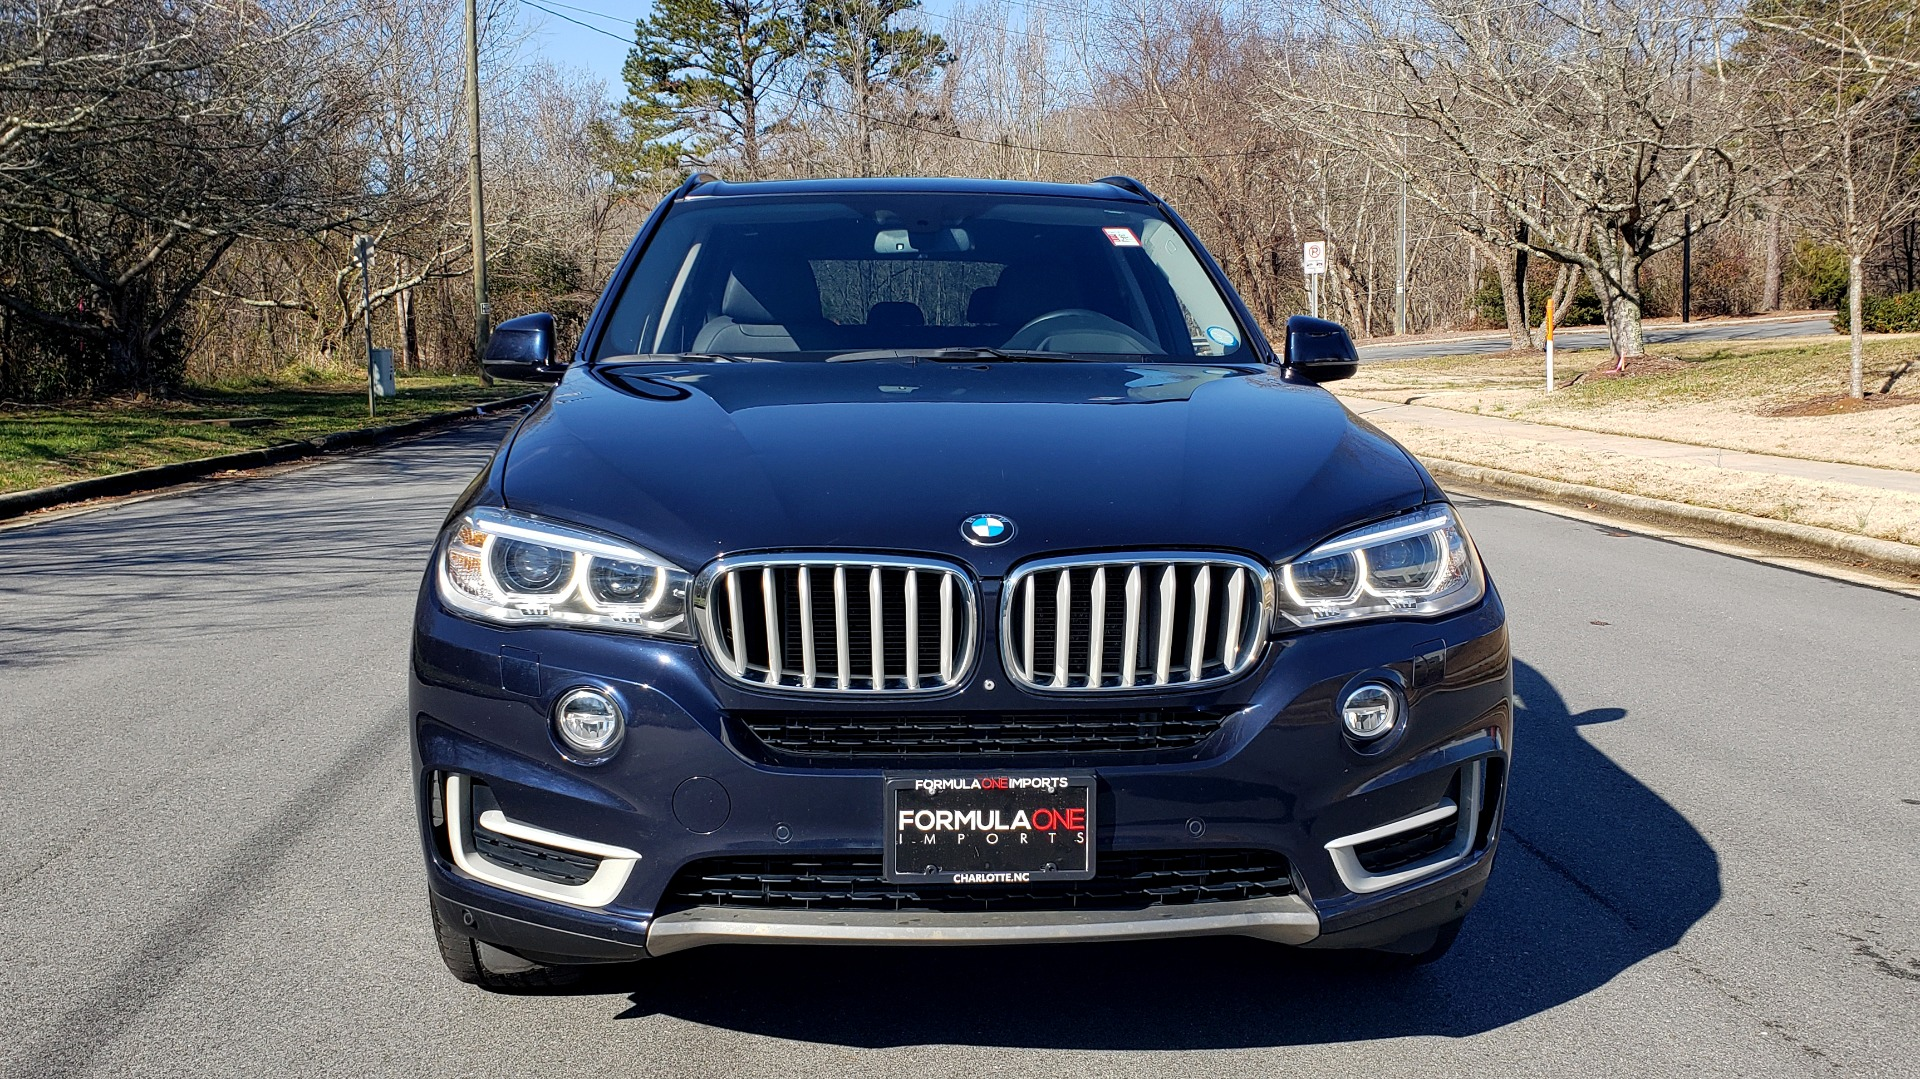 Used 2015 BMW X5 XDRIVE35I PREMIUM / NAV / XLINE / CLD WTHR / DRVR ASST / REARVIEW for sale Sold at Formula Imports in Charlotte NC 28227 25